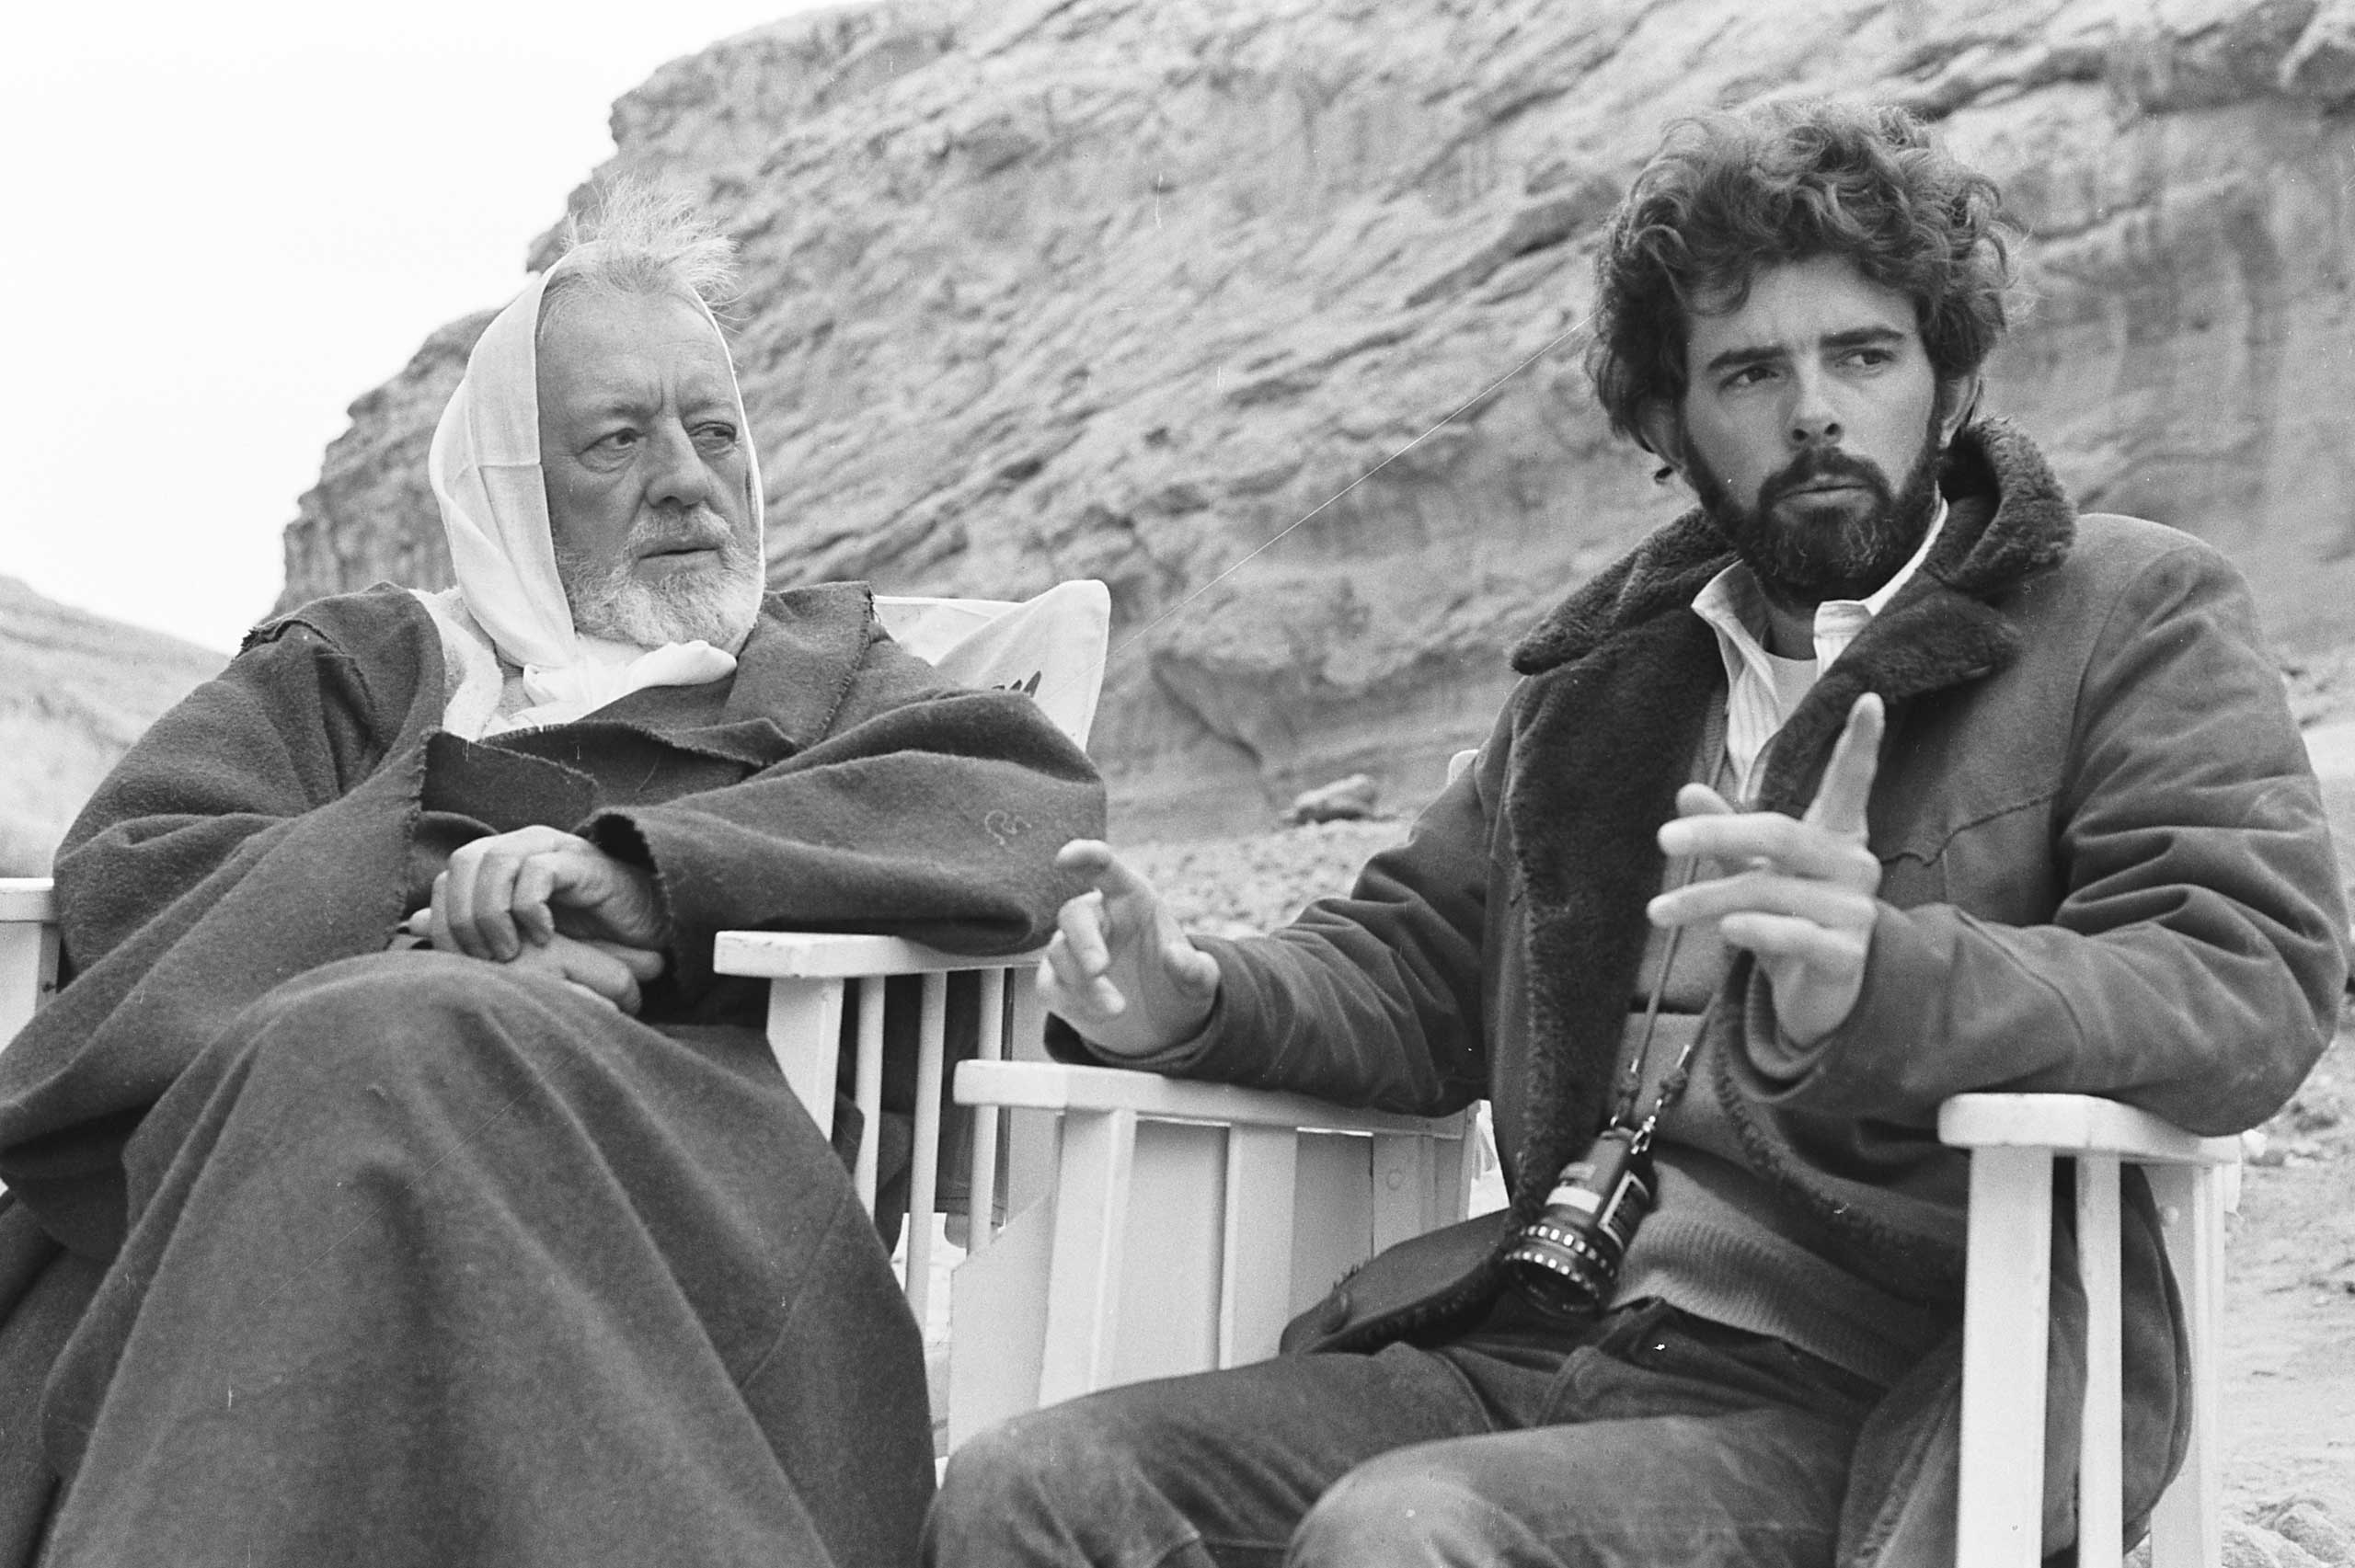 Lucas gives direction to Sir Alec Guinness (Obi-Wan Kenobi) in Episode IV.